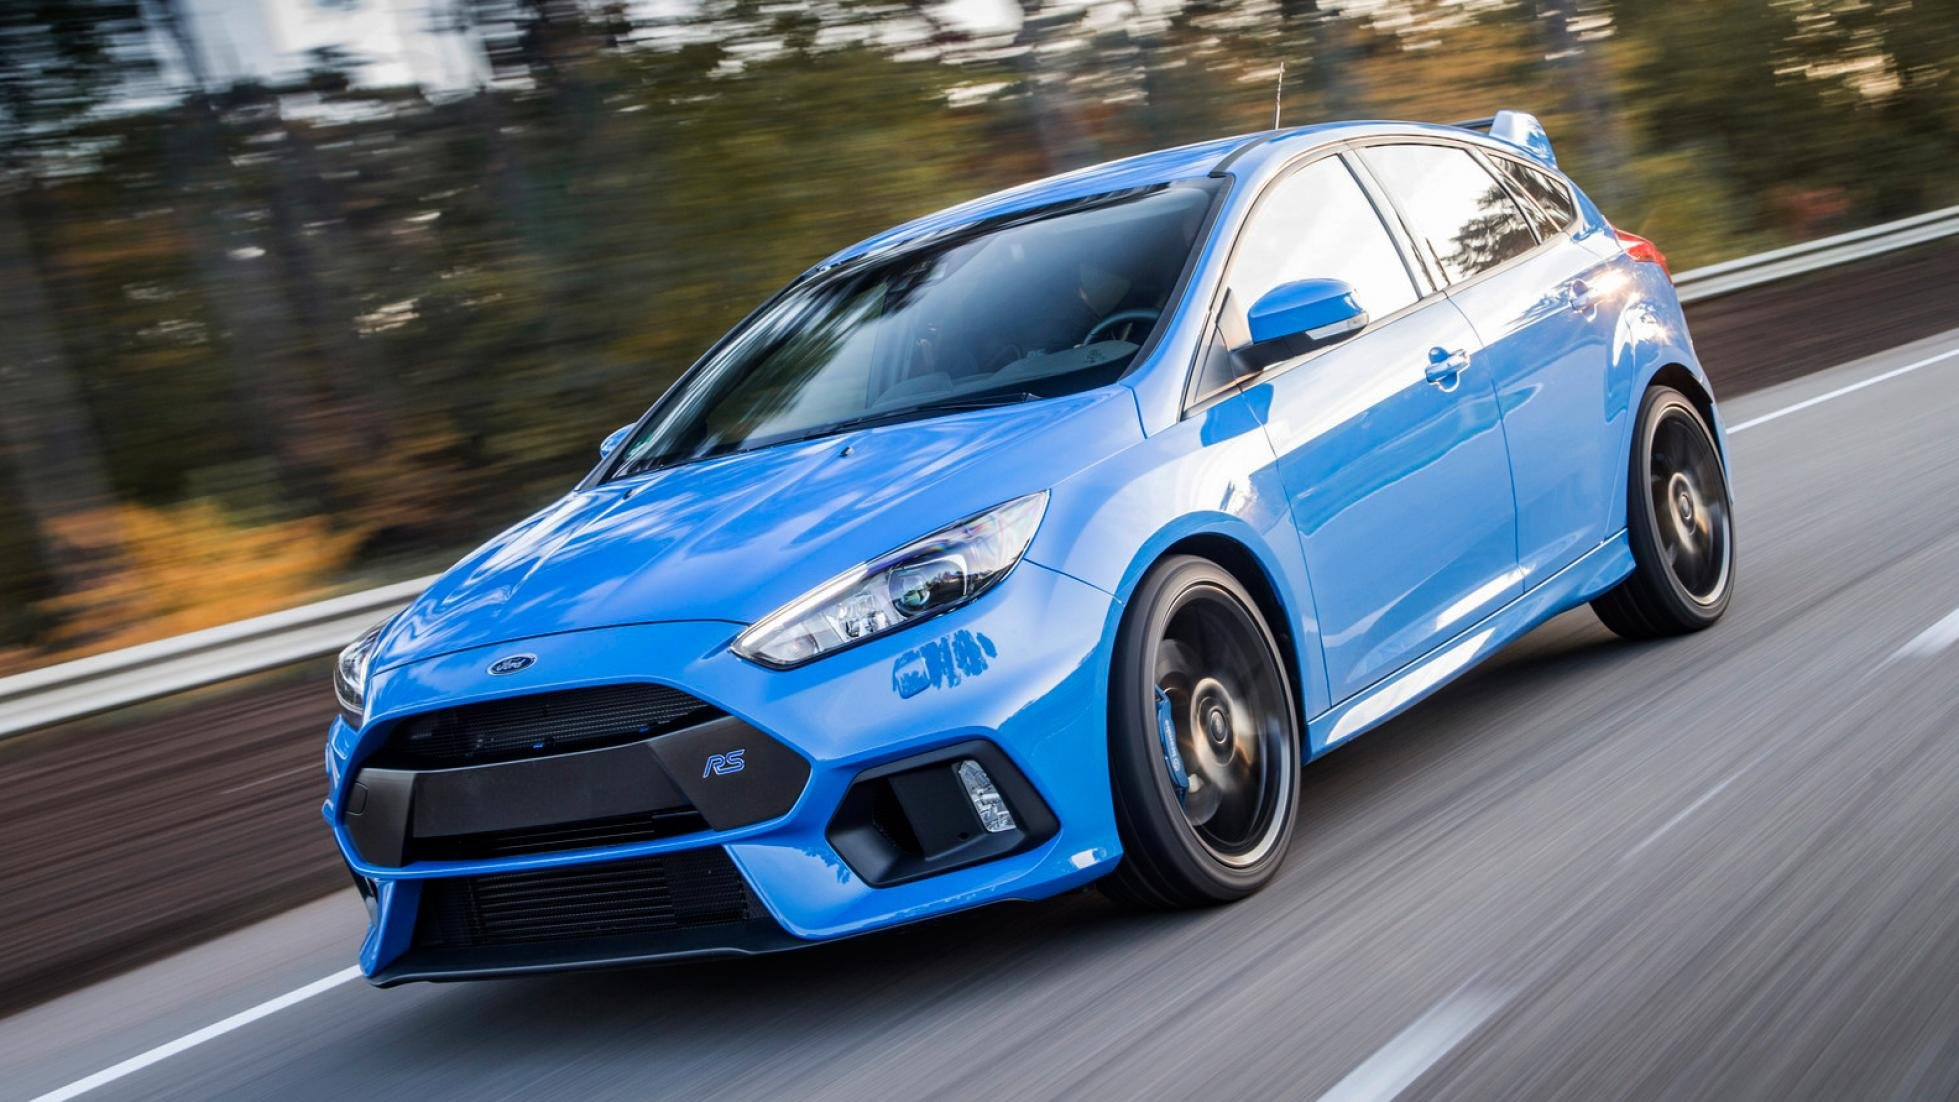 Ford Focus RS Allocation Increases in the UK Due to Massive Demand